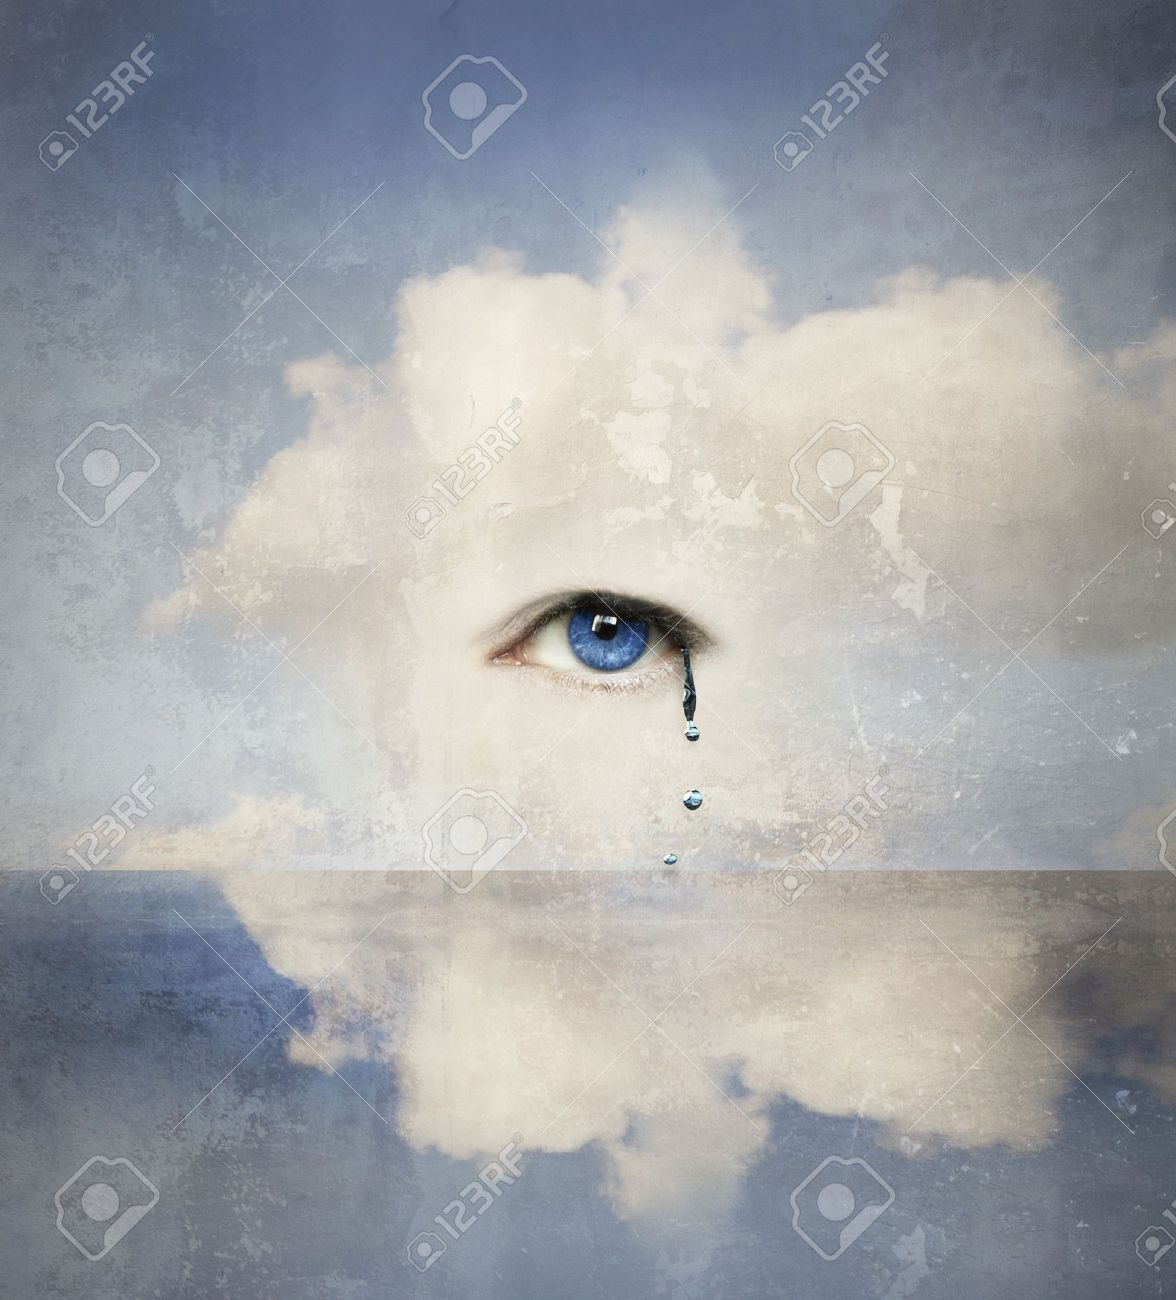 Fantasy concept of a human eye crying in the clouds - 14713064